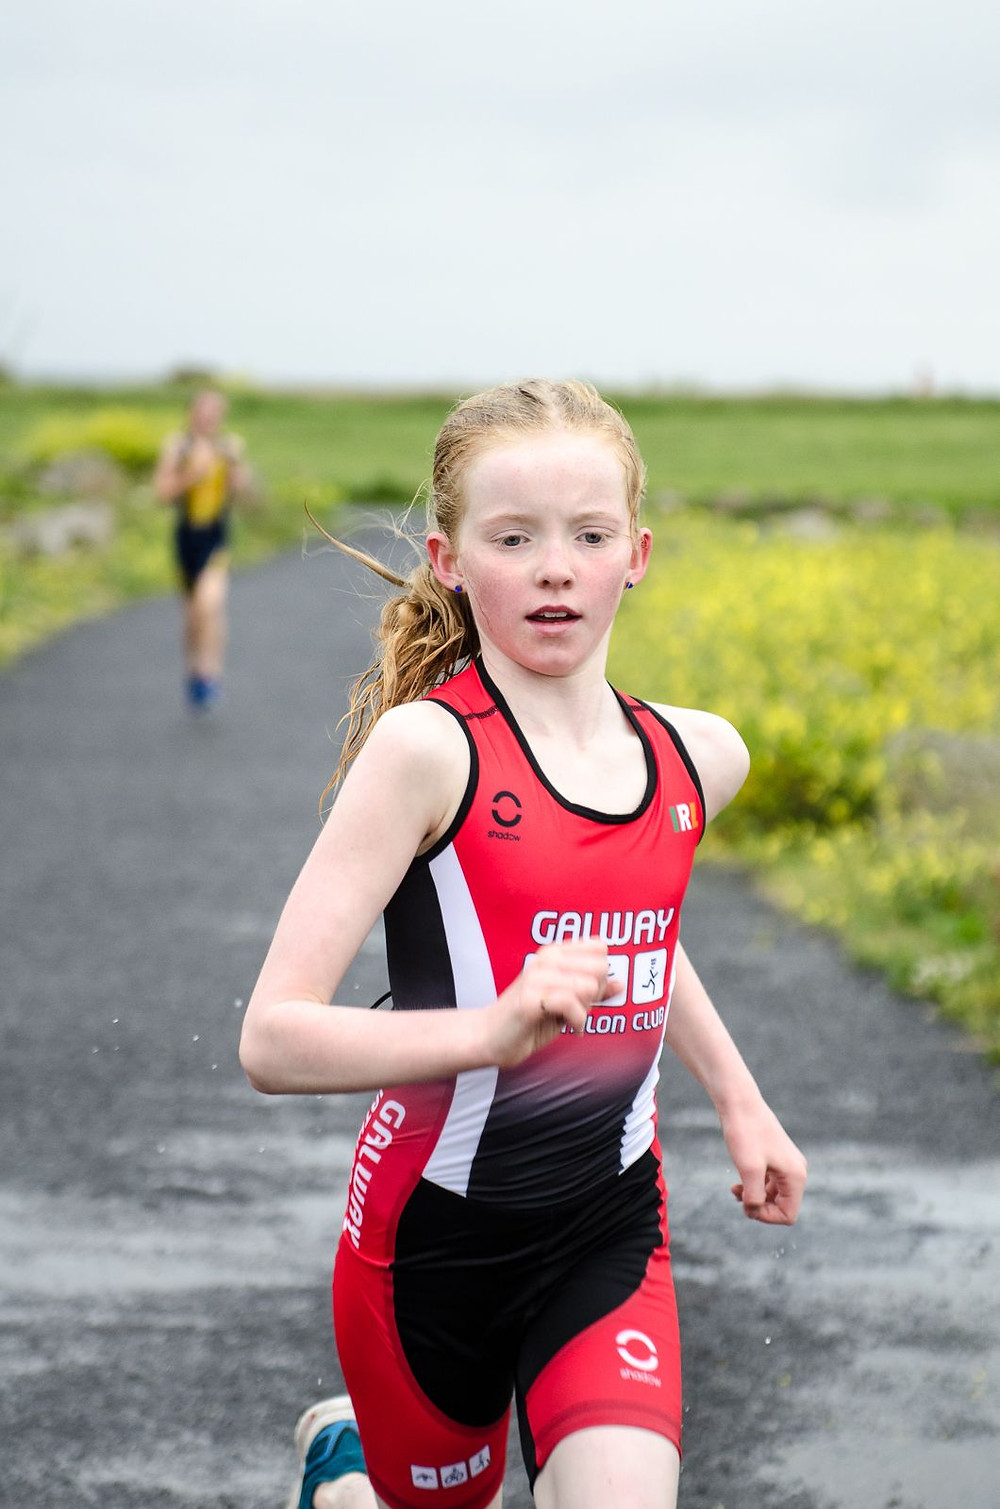 Caoimhe O Brien testing out her new GTC Kit at the Junior training session last night Photo Credit Michal Dzikowski.jpg